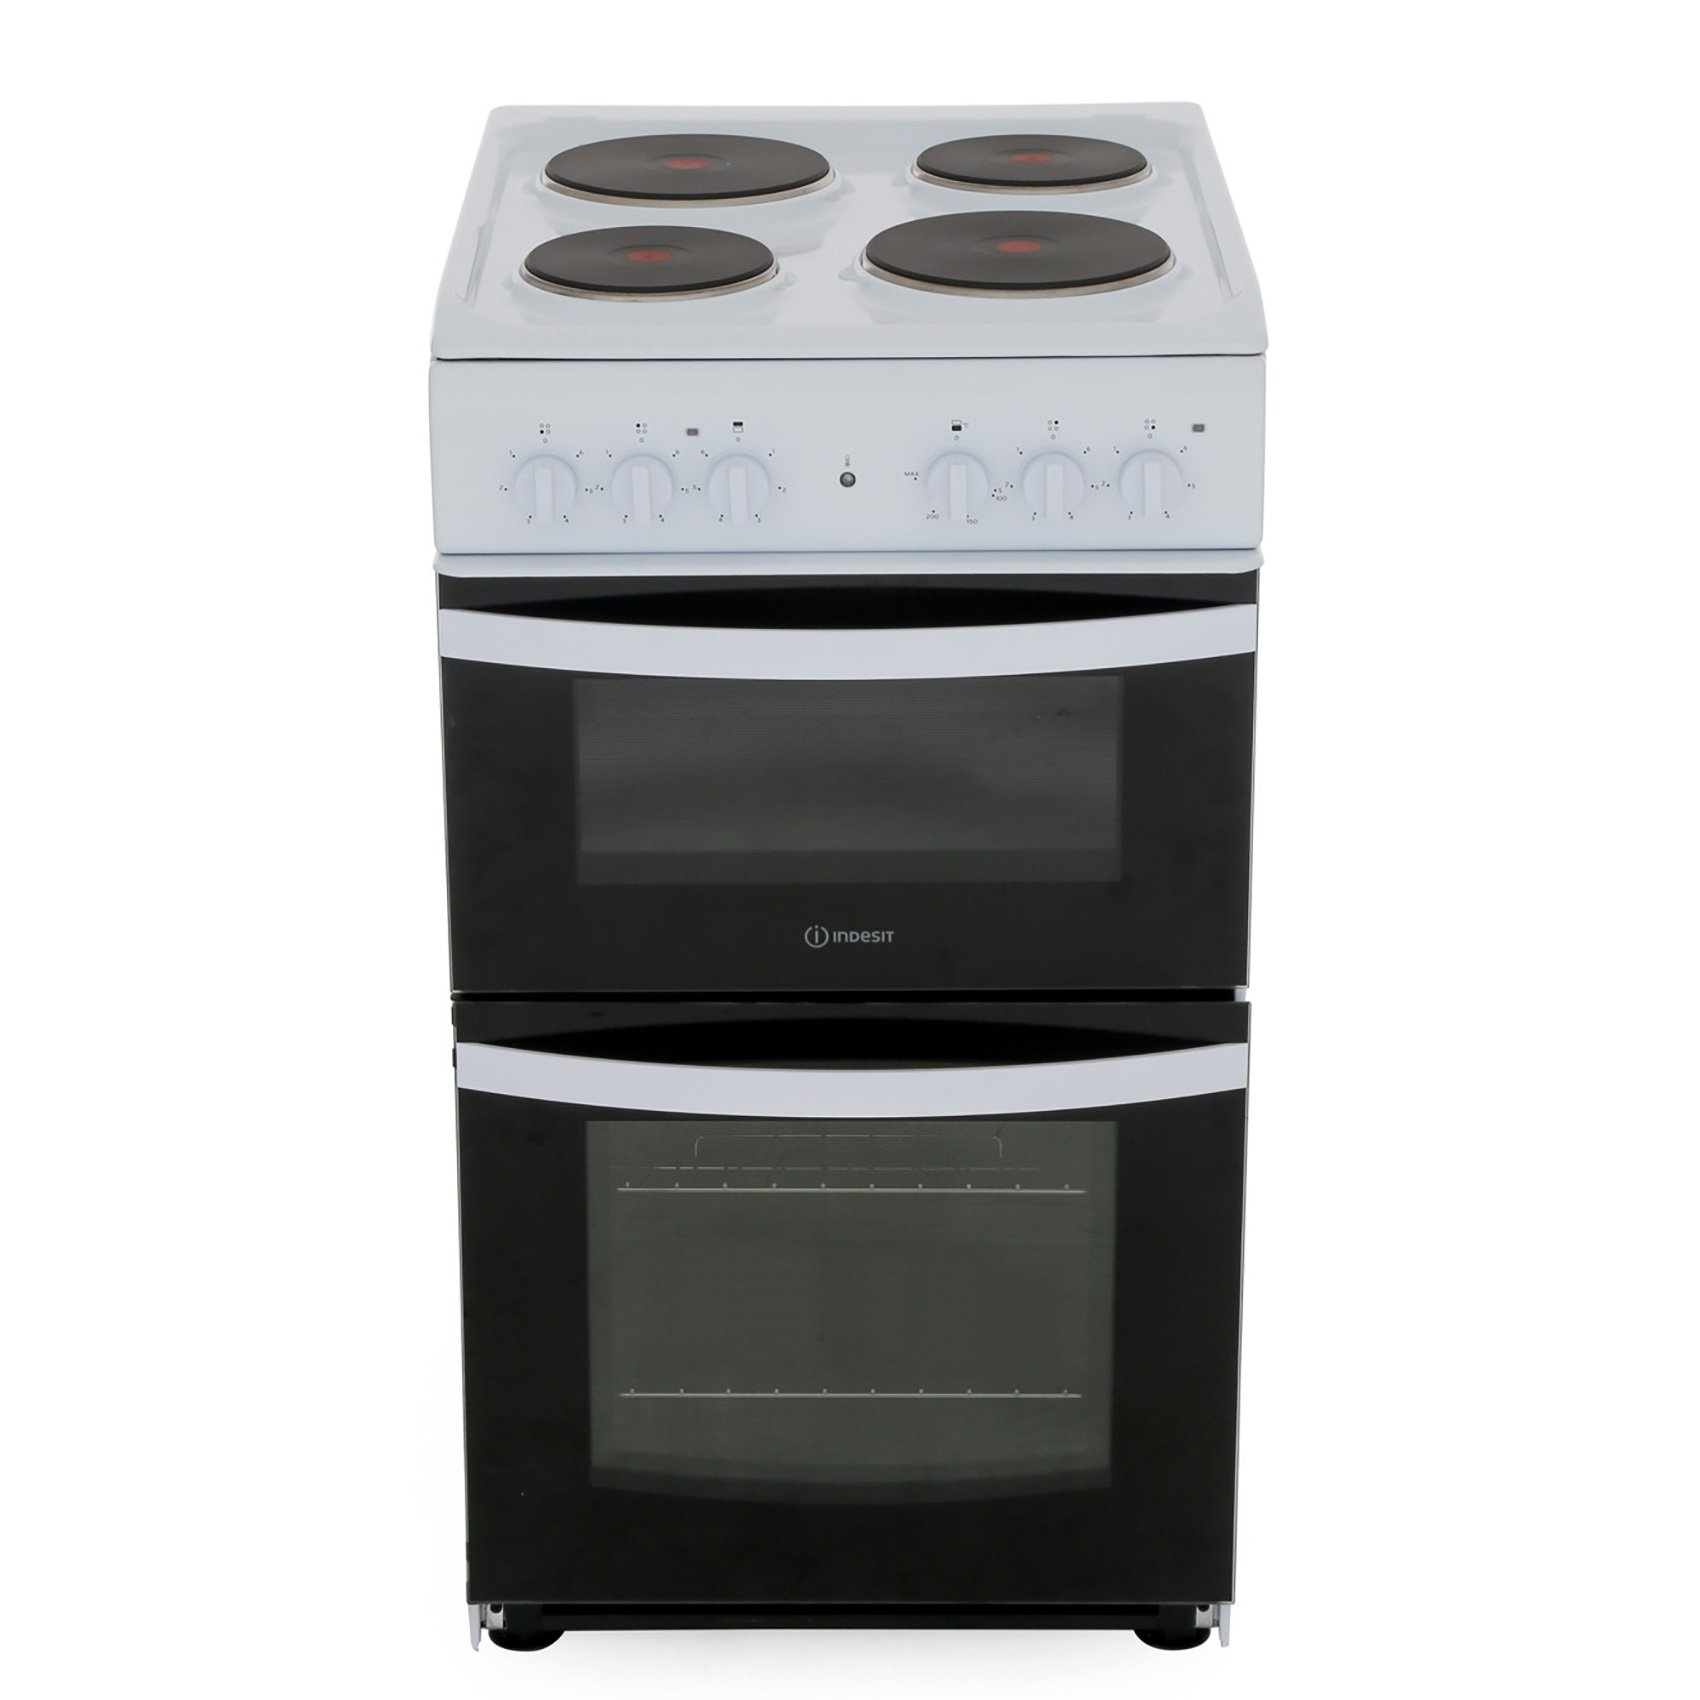 Indesit ID5E92KMW/UK Solid Plate Electric Cooker Separate Grill